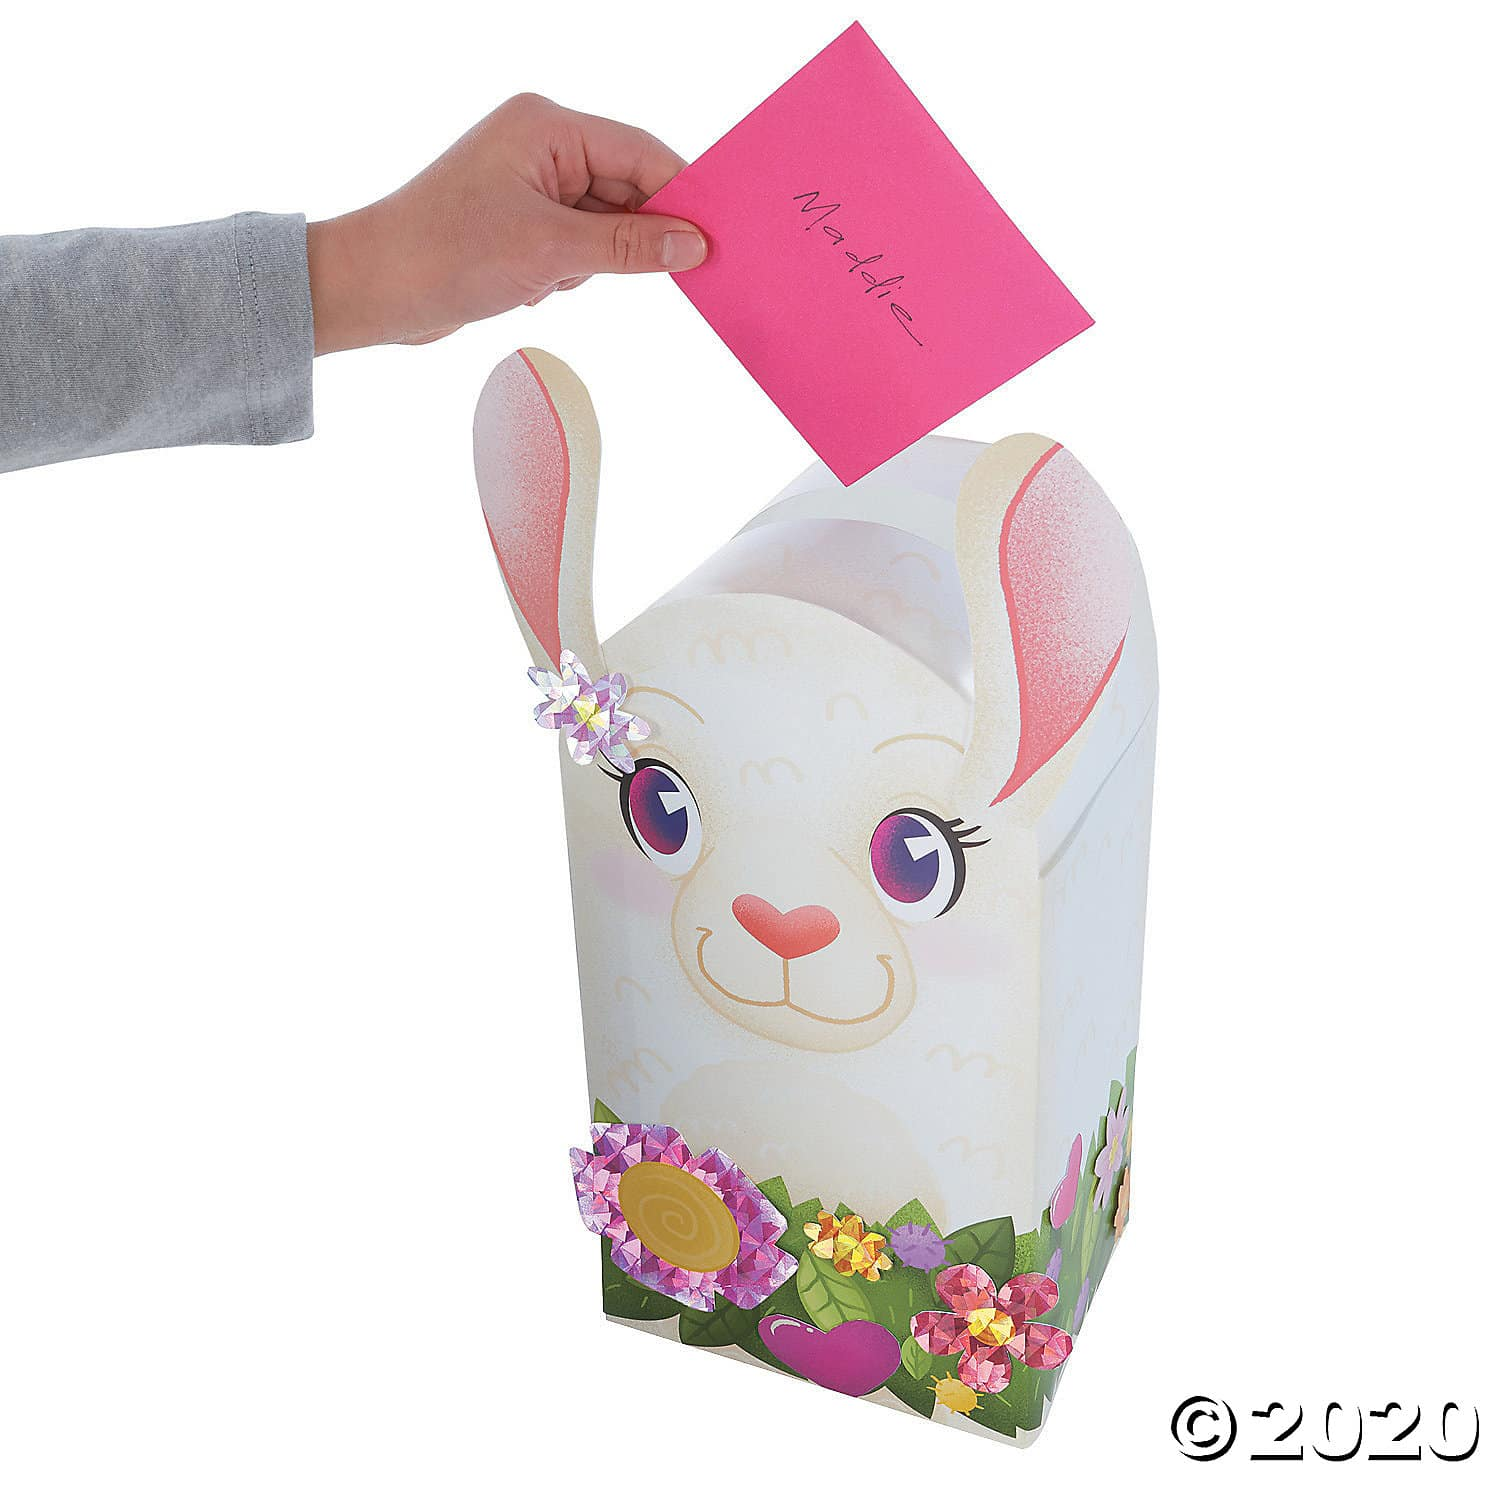 Llama Valentine Mailbox. This ready-to-assemble llama is perfect for collecting Valentine's cards and candy at any classroom party. Simply fold the sturdy cardstock mailbox, seal it with adhesive strips and add sparkly foil accessories for your own personal touch! 2020 Valentine's Day Gift Guide from Jays Sweet N Sour Life Blog.